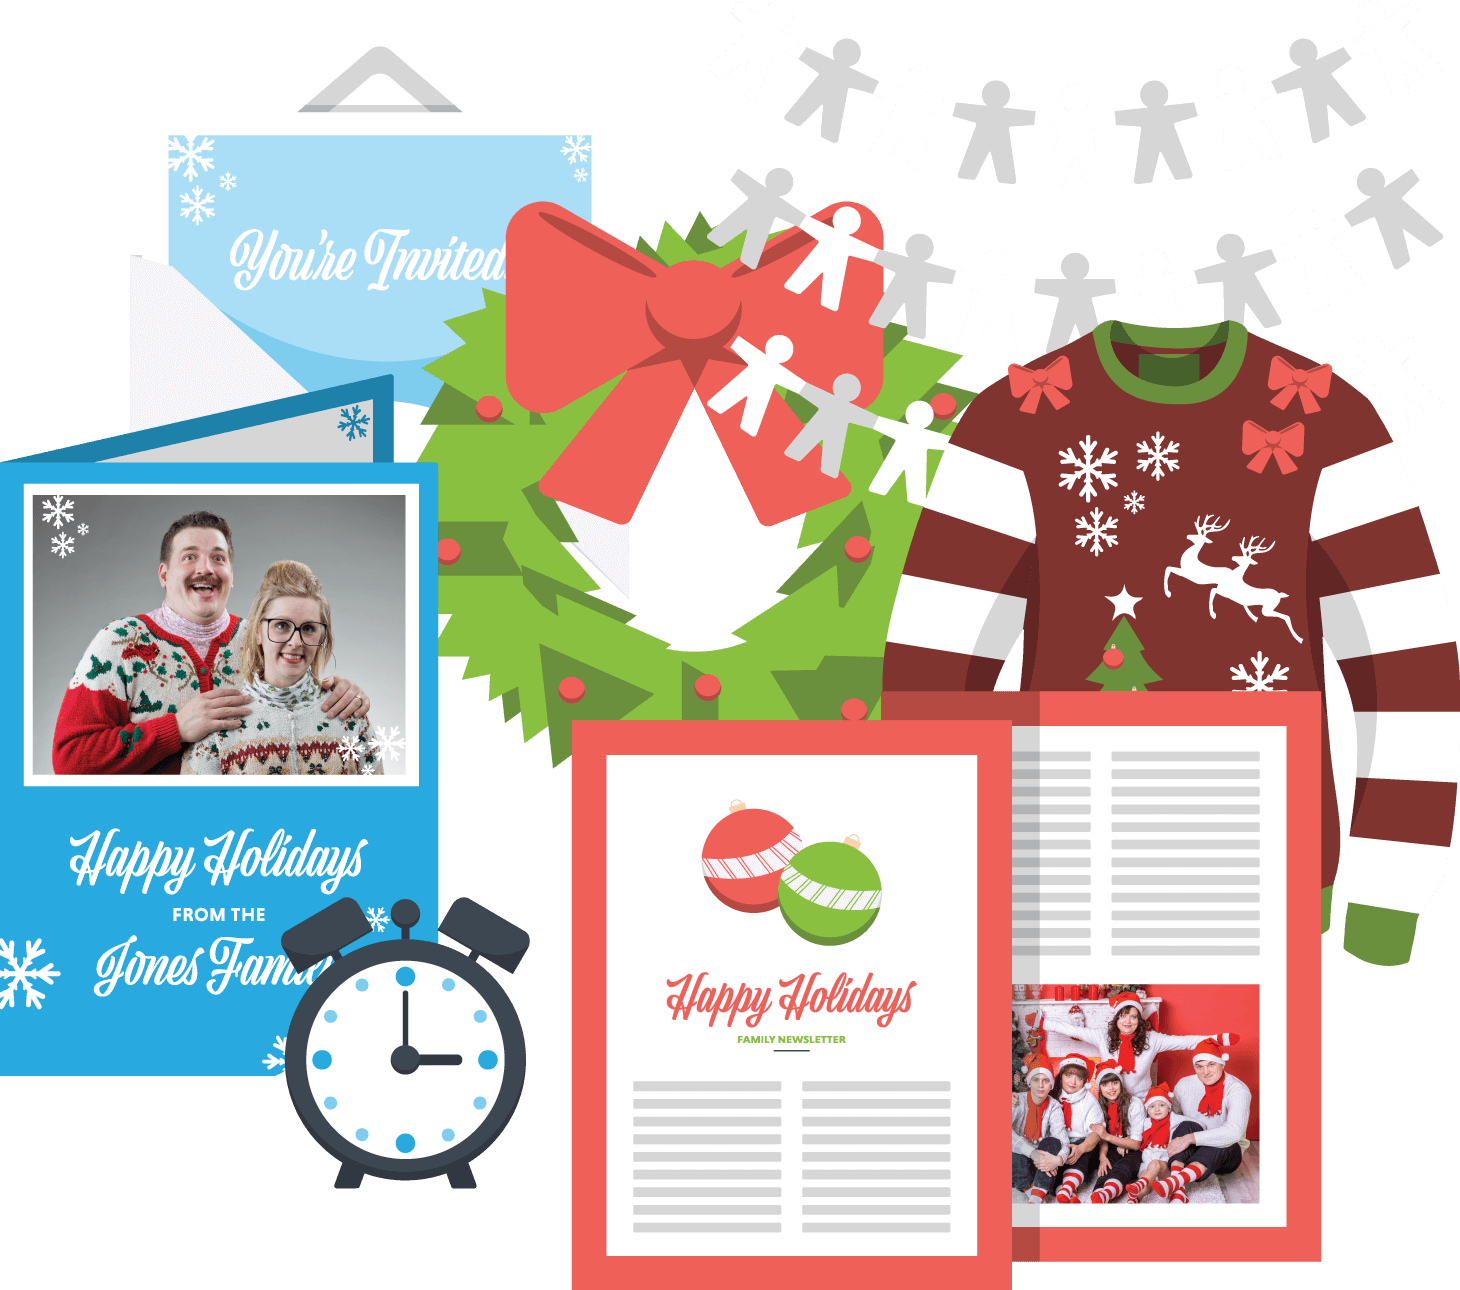 Lucidpress Print and Win Holiday Sweepstakes